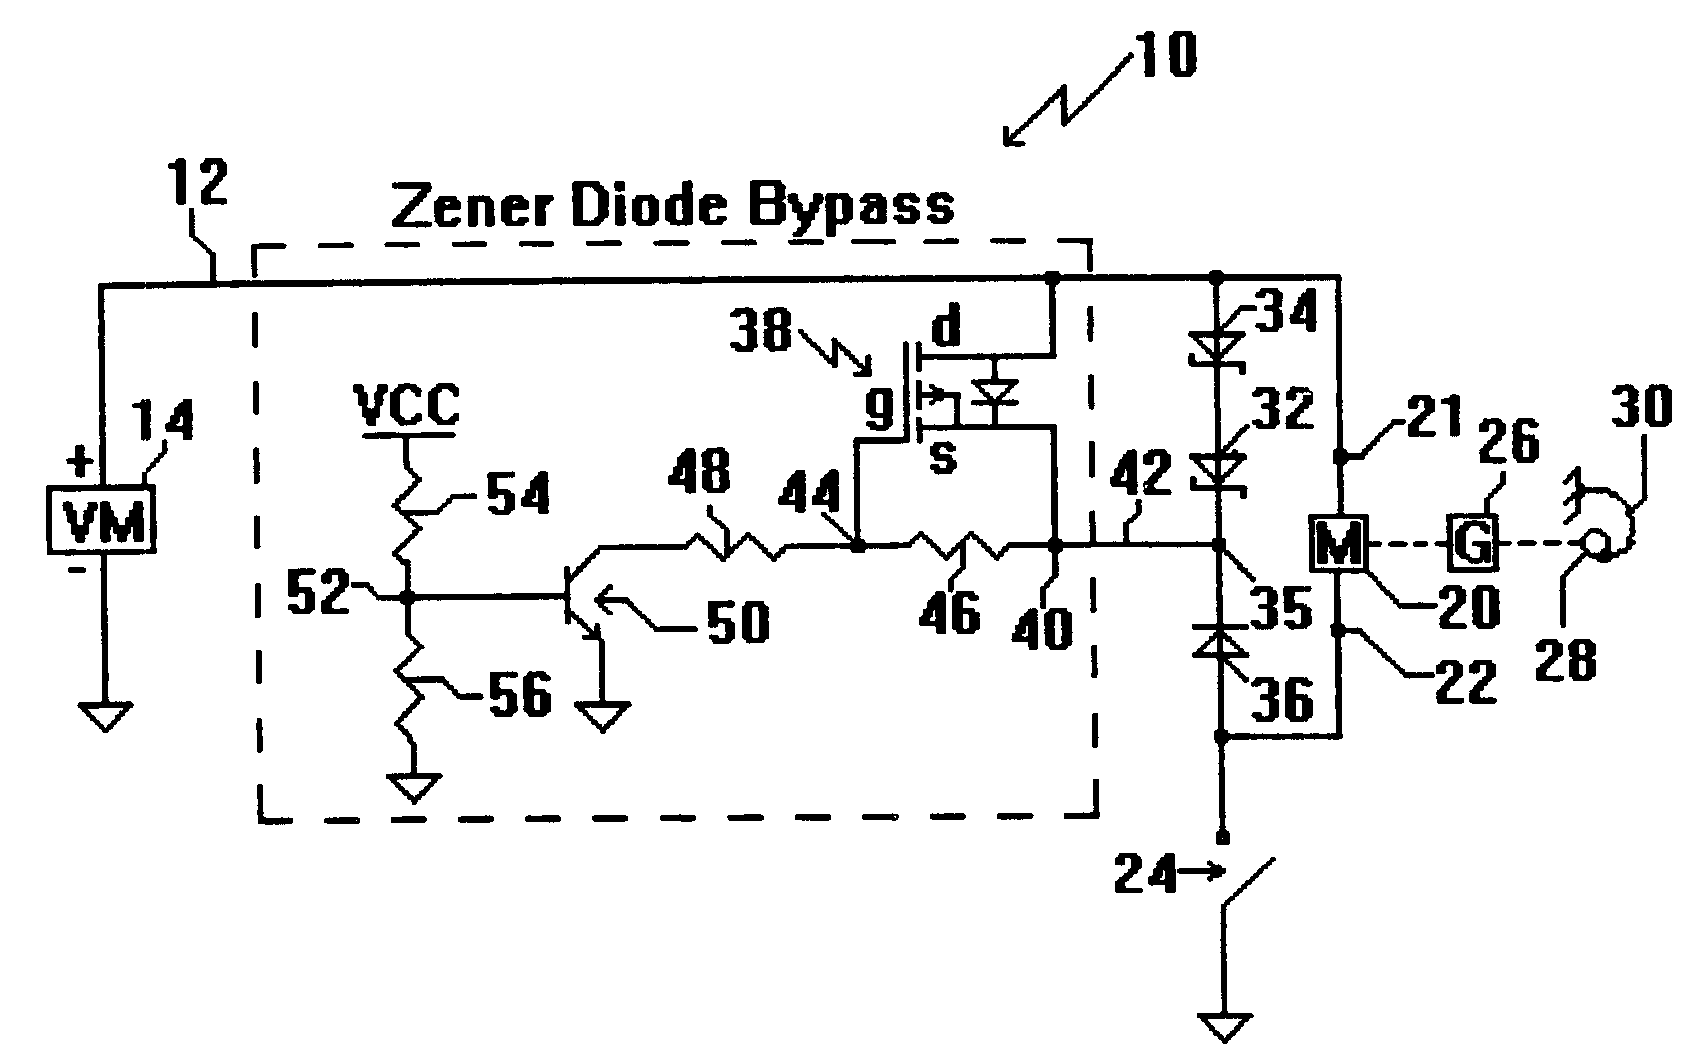 Circuit Diagram Zener Diode Patent Us6369540 Bypass For Use In Dc Brush Motor Control Drawing